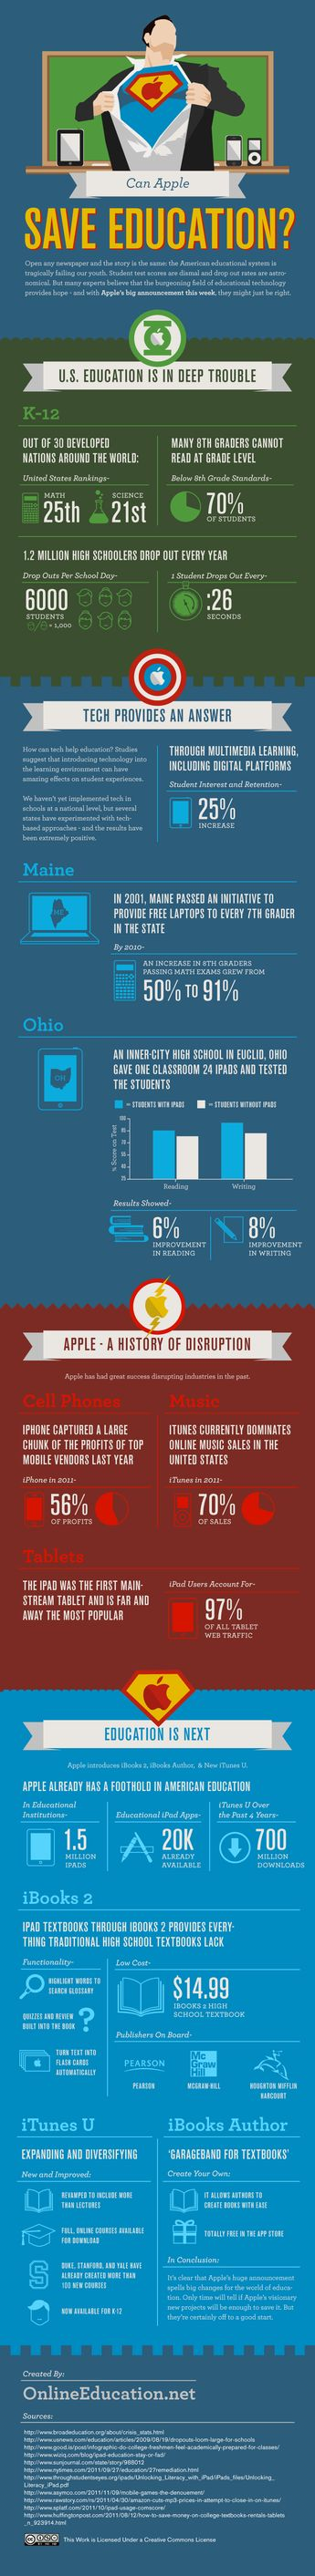 Can Apple's new textbook initiative save U.S. education? (infographic)